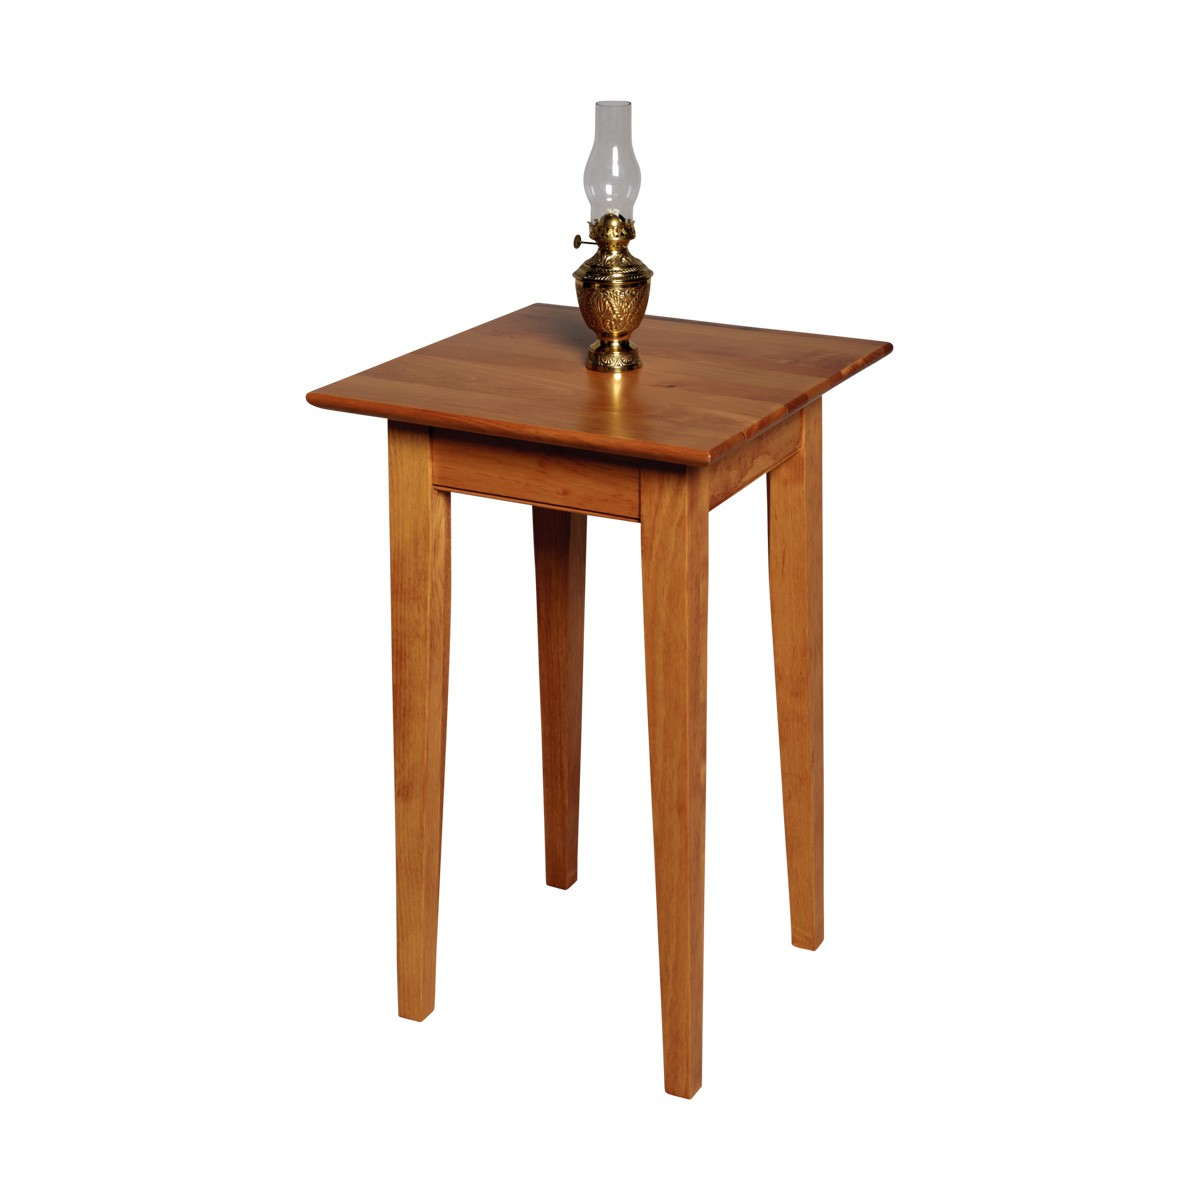 Lamp Table Heirloom Pine Canterbury End Table Living Room 25 Inch Height Light Table Lamp Table End Table Living Room